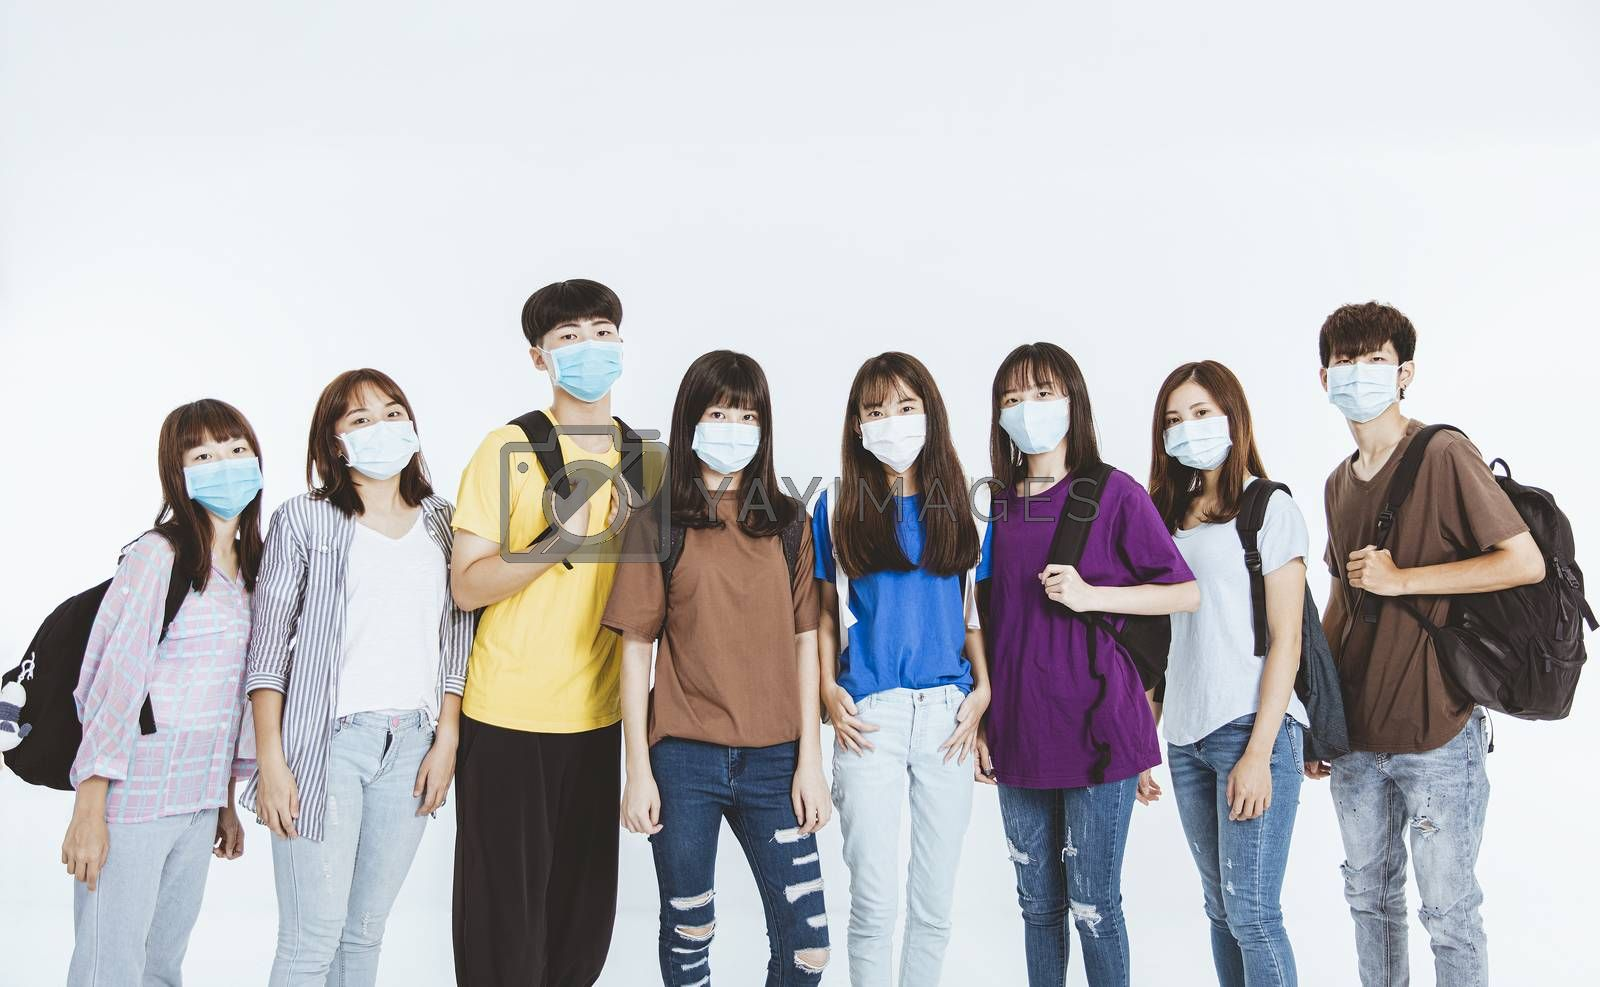 young student group wearing protective medical face masks standing together